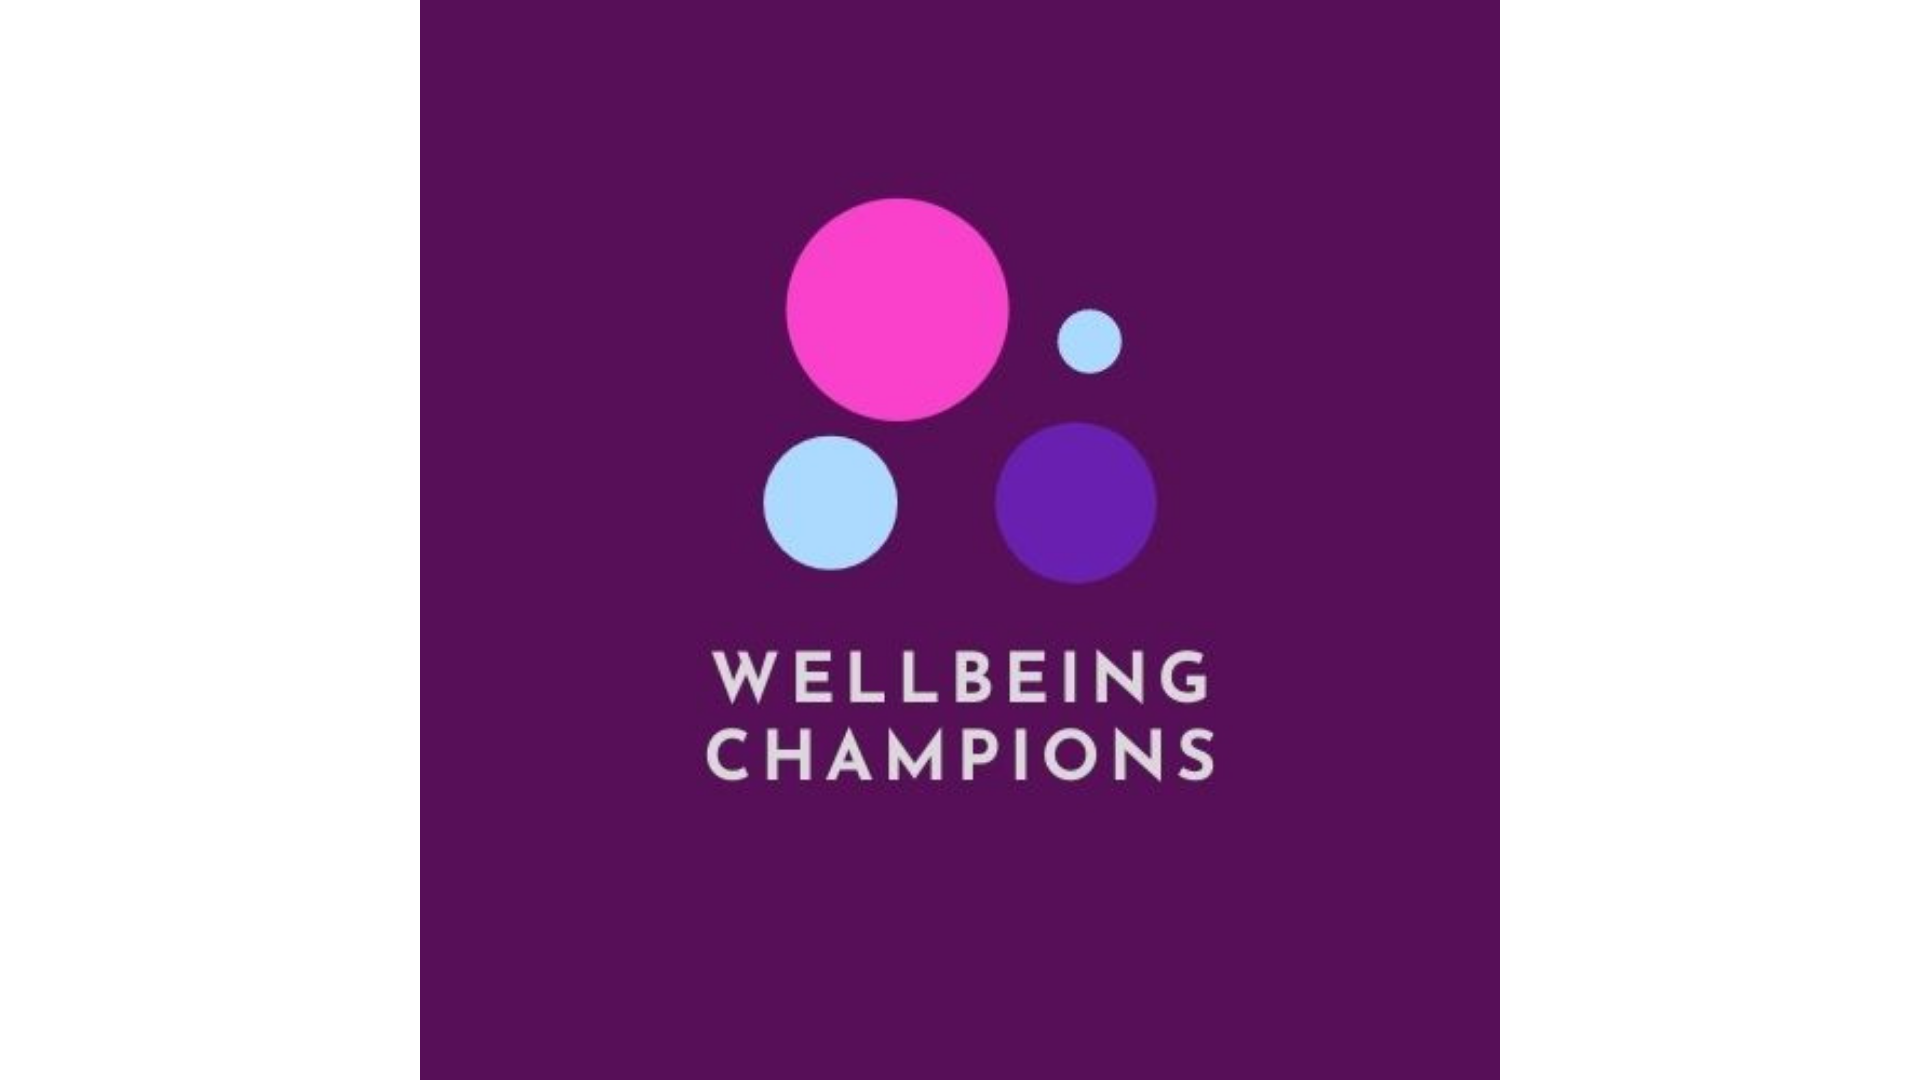 Wellbeing Champions logo